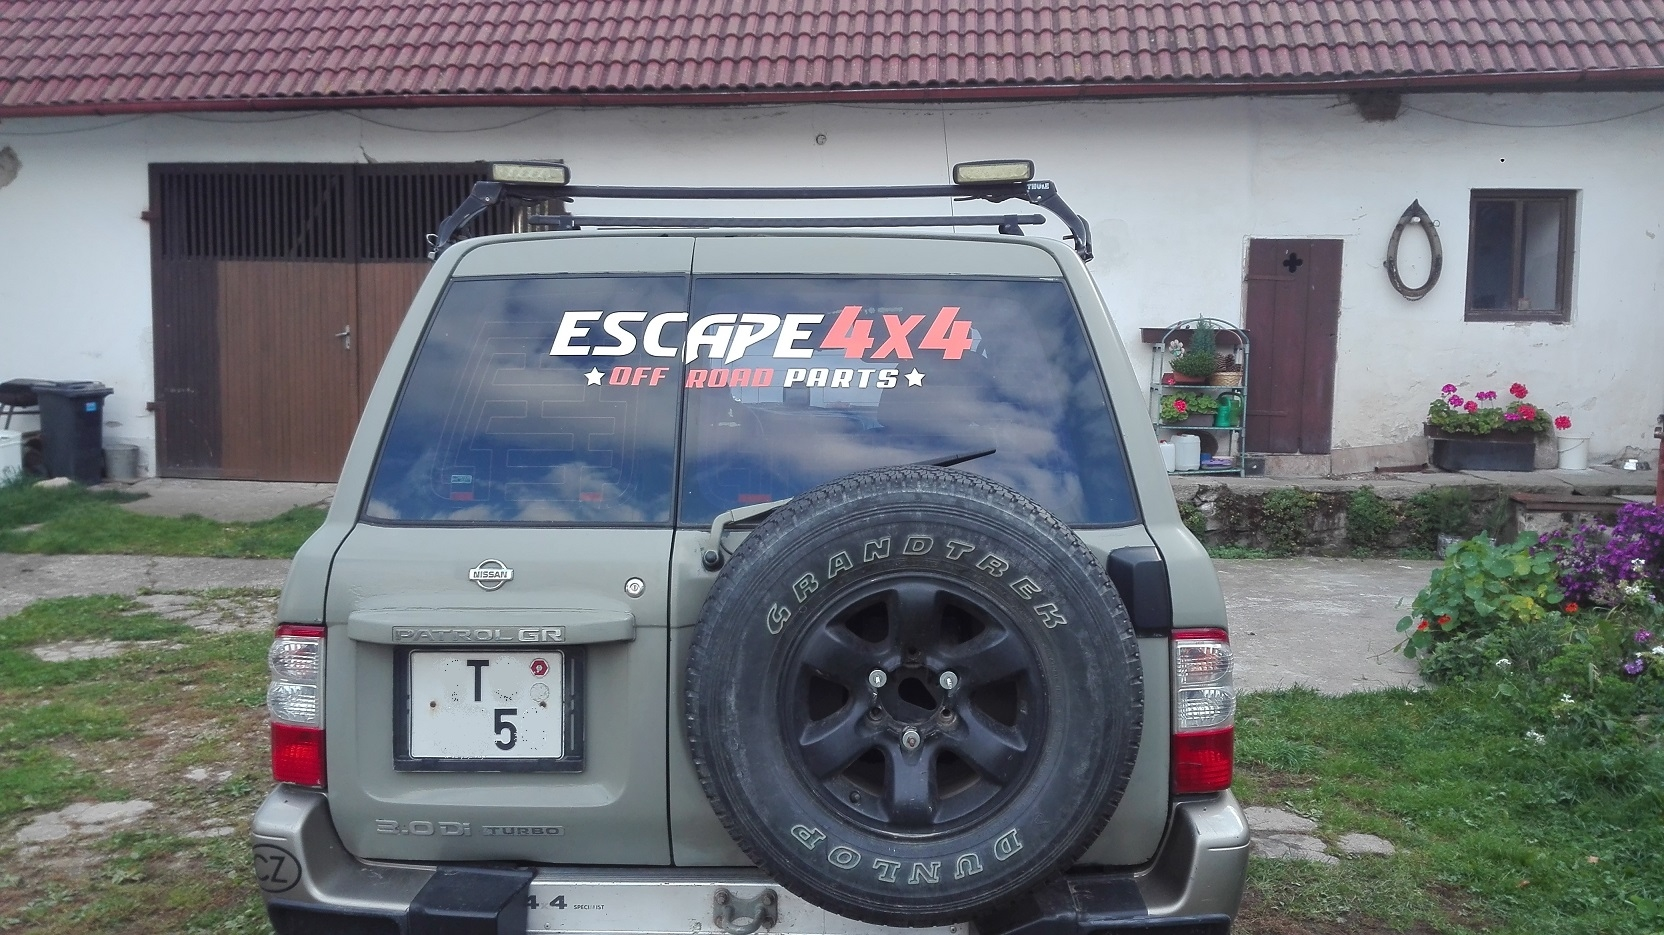 Patrol Nissan Escape4x4